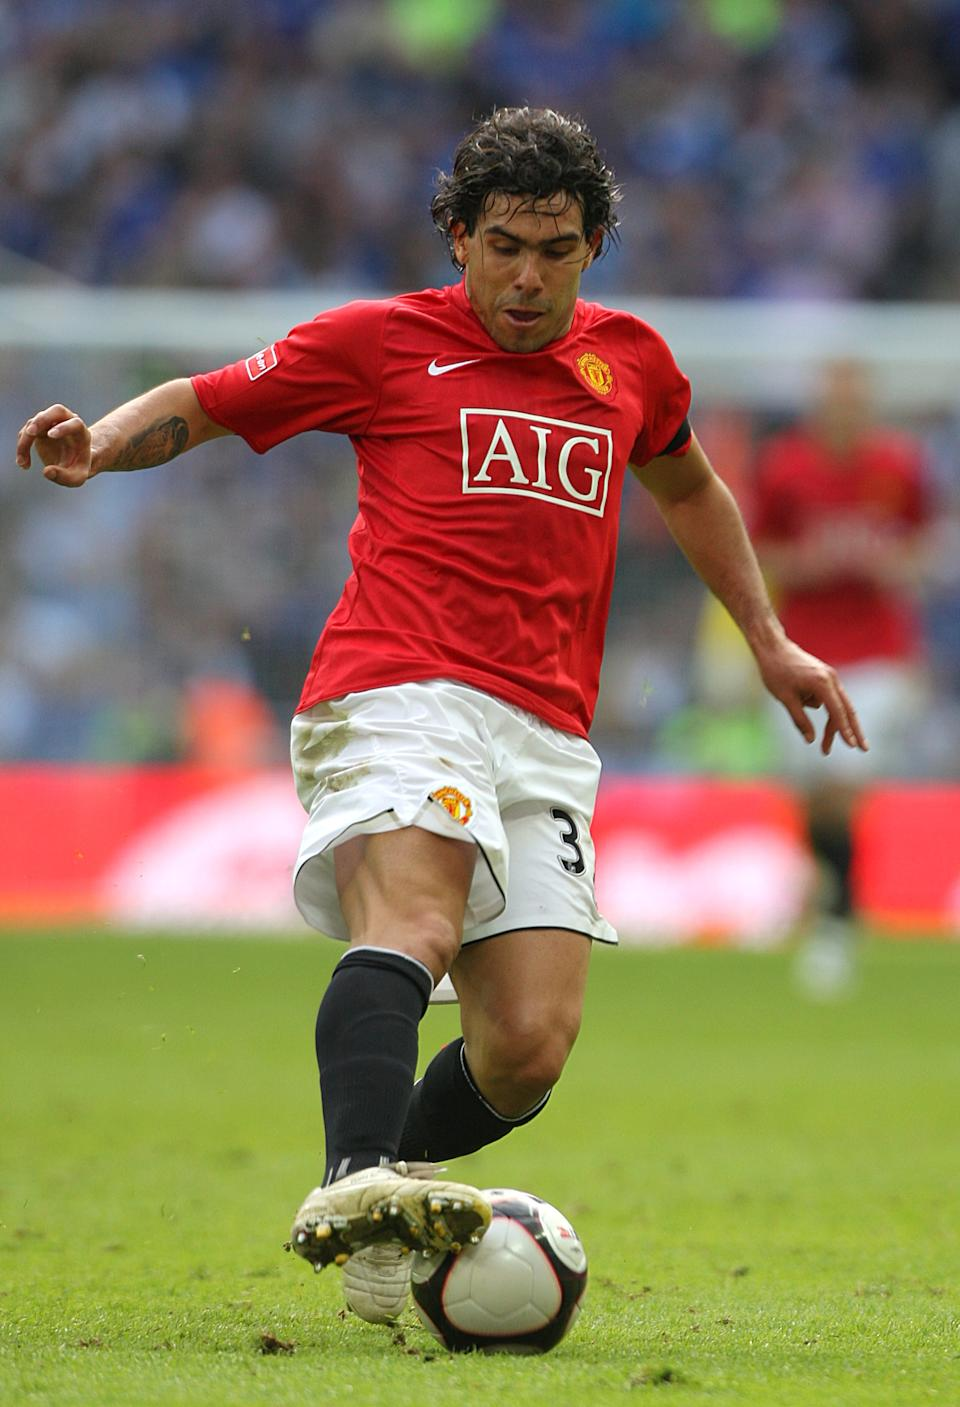 Carlos Tevez, Manchester United   (Photo by Nick Potts - PA Images/PA Images via Getty Images)